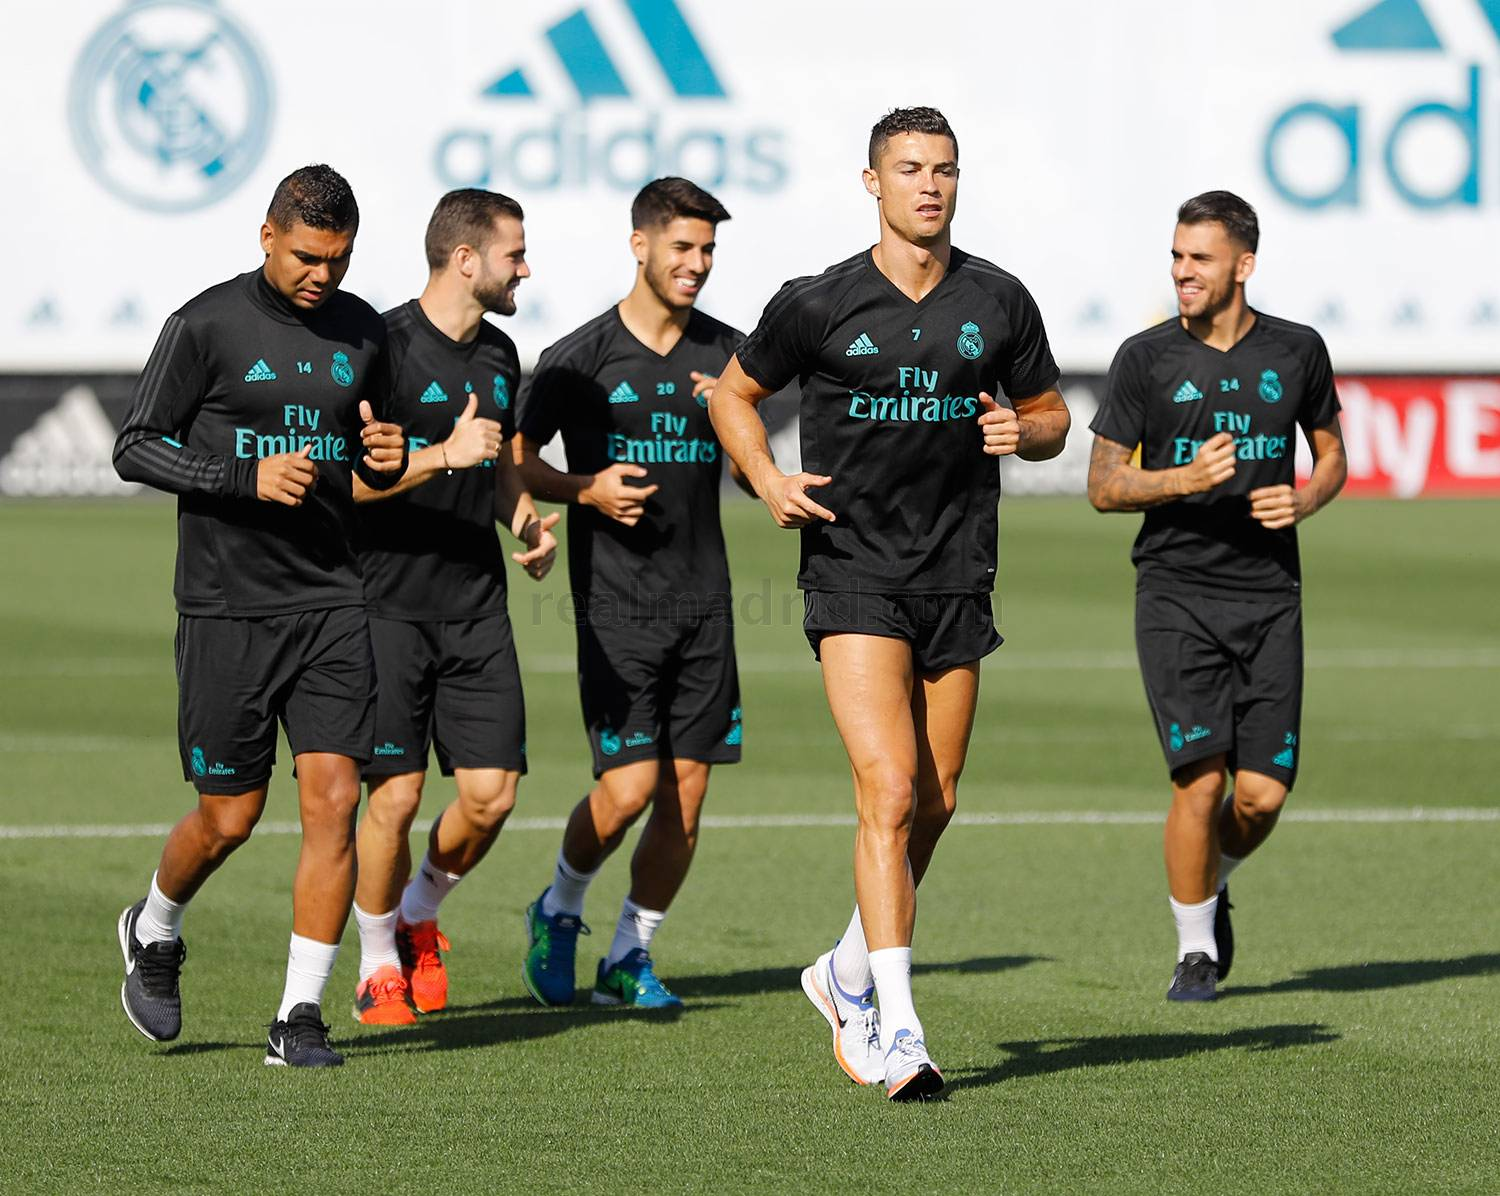 Real Madrid - Entrenamiento del Real Madrid - 24-09-2017